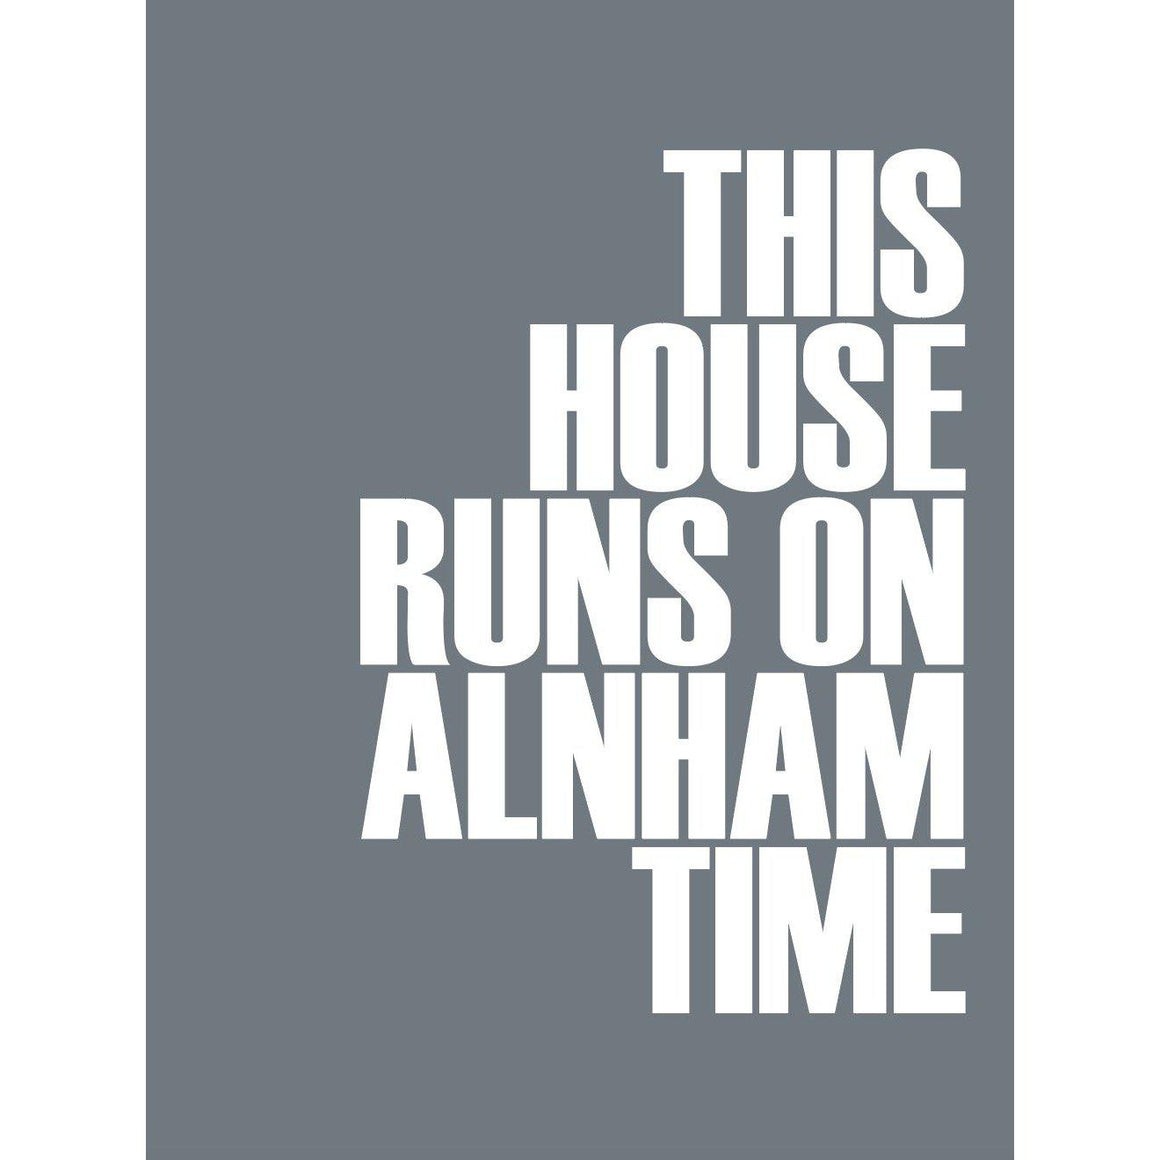 Alnham Time Typographic Travel Print Coastal Wall Art by SeaKisses